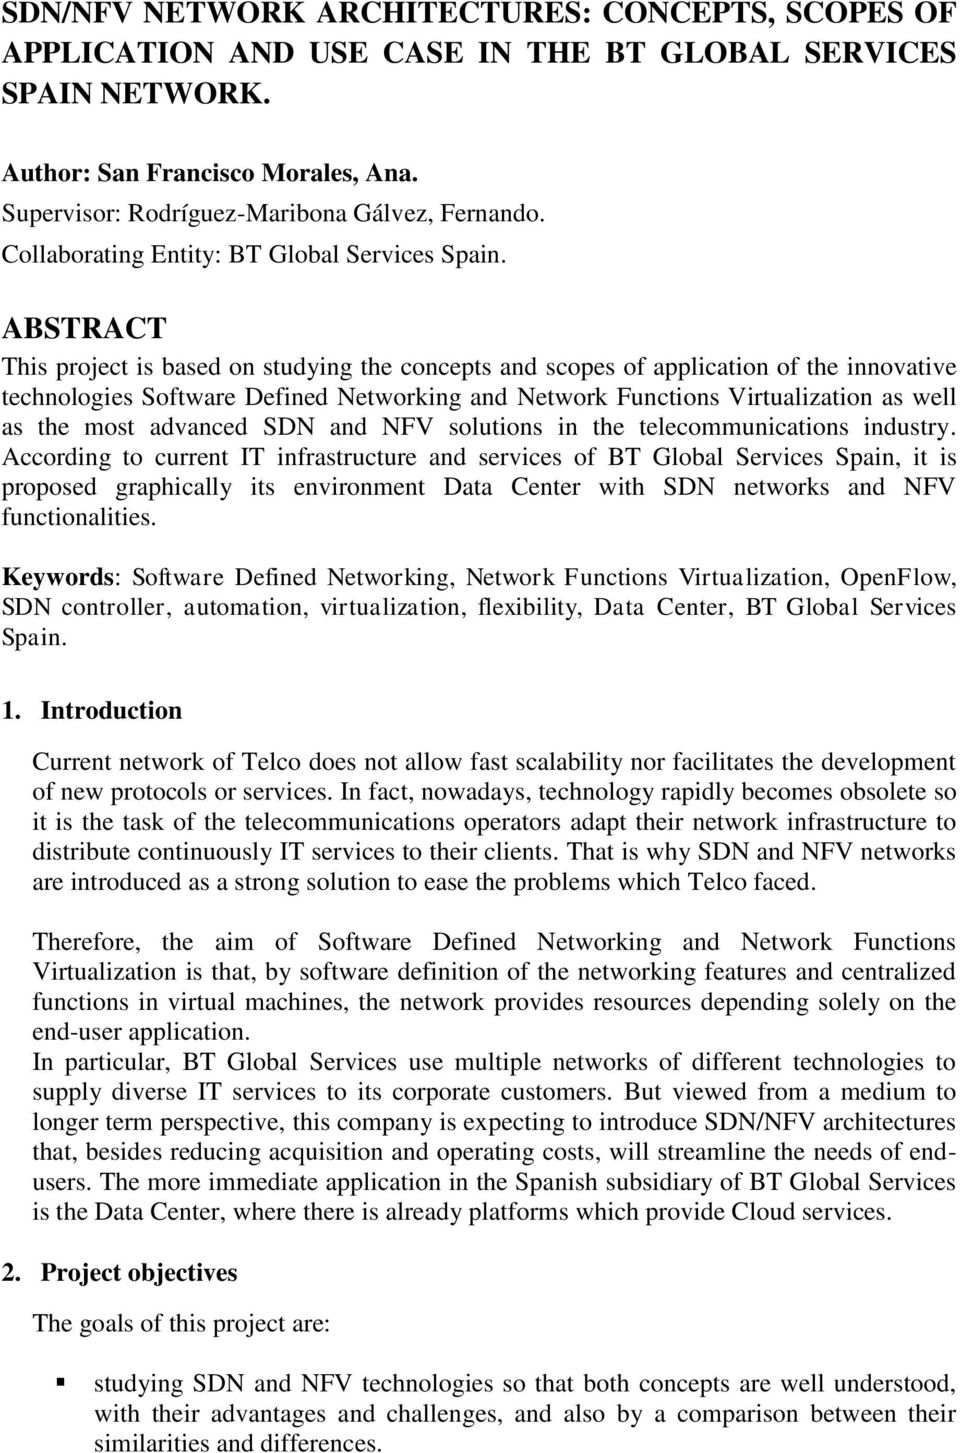 ABSTRACT This project is based on studying the concepts and scopes of application of the innovative technologies Software Defined Networking and Network Functions Virtualization as well as the most